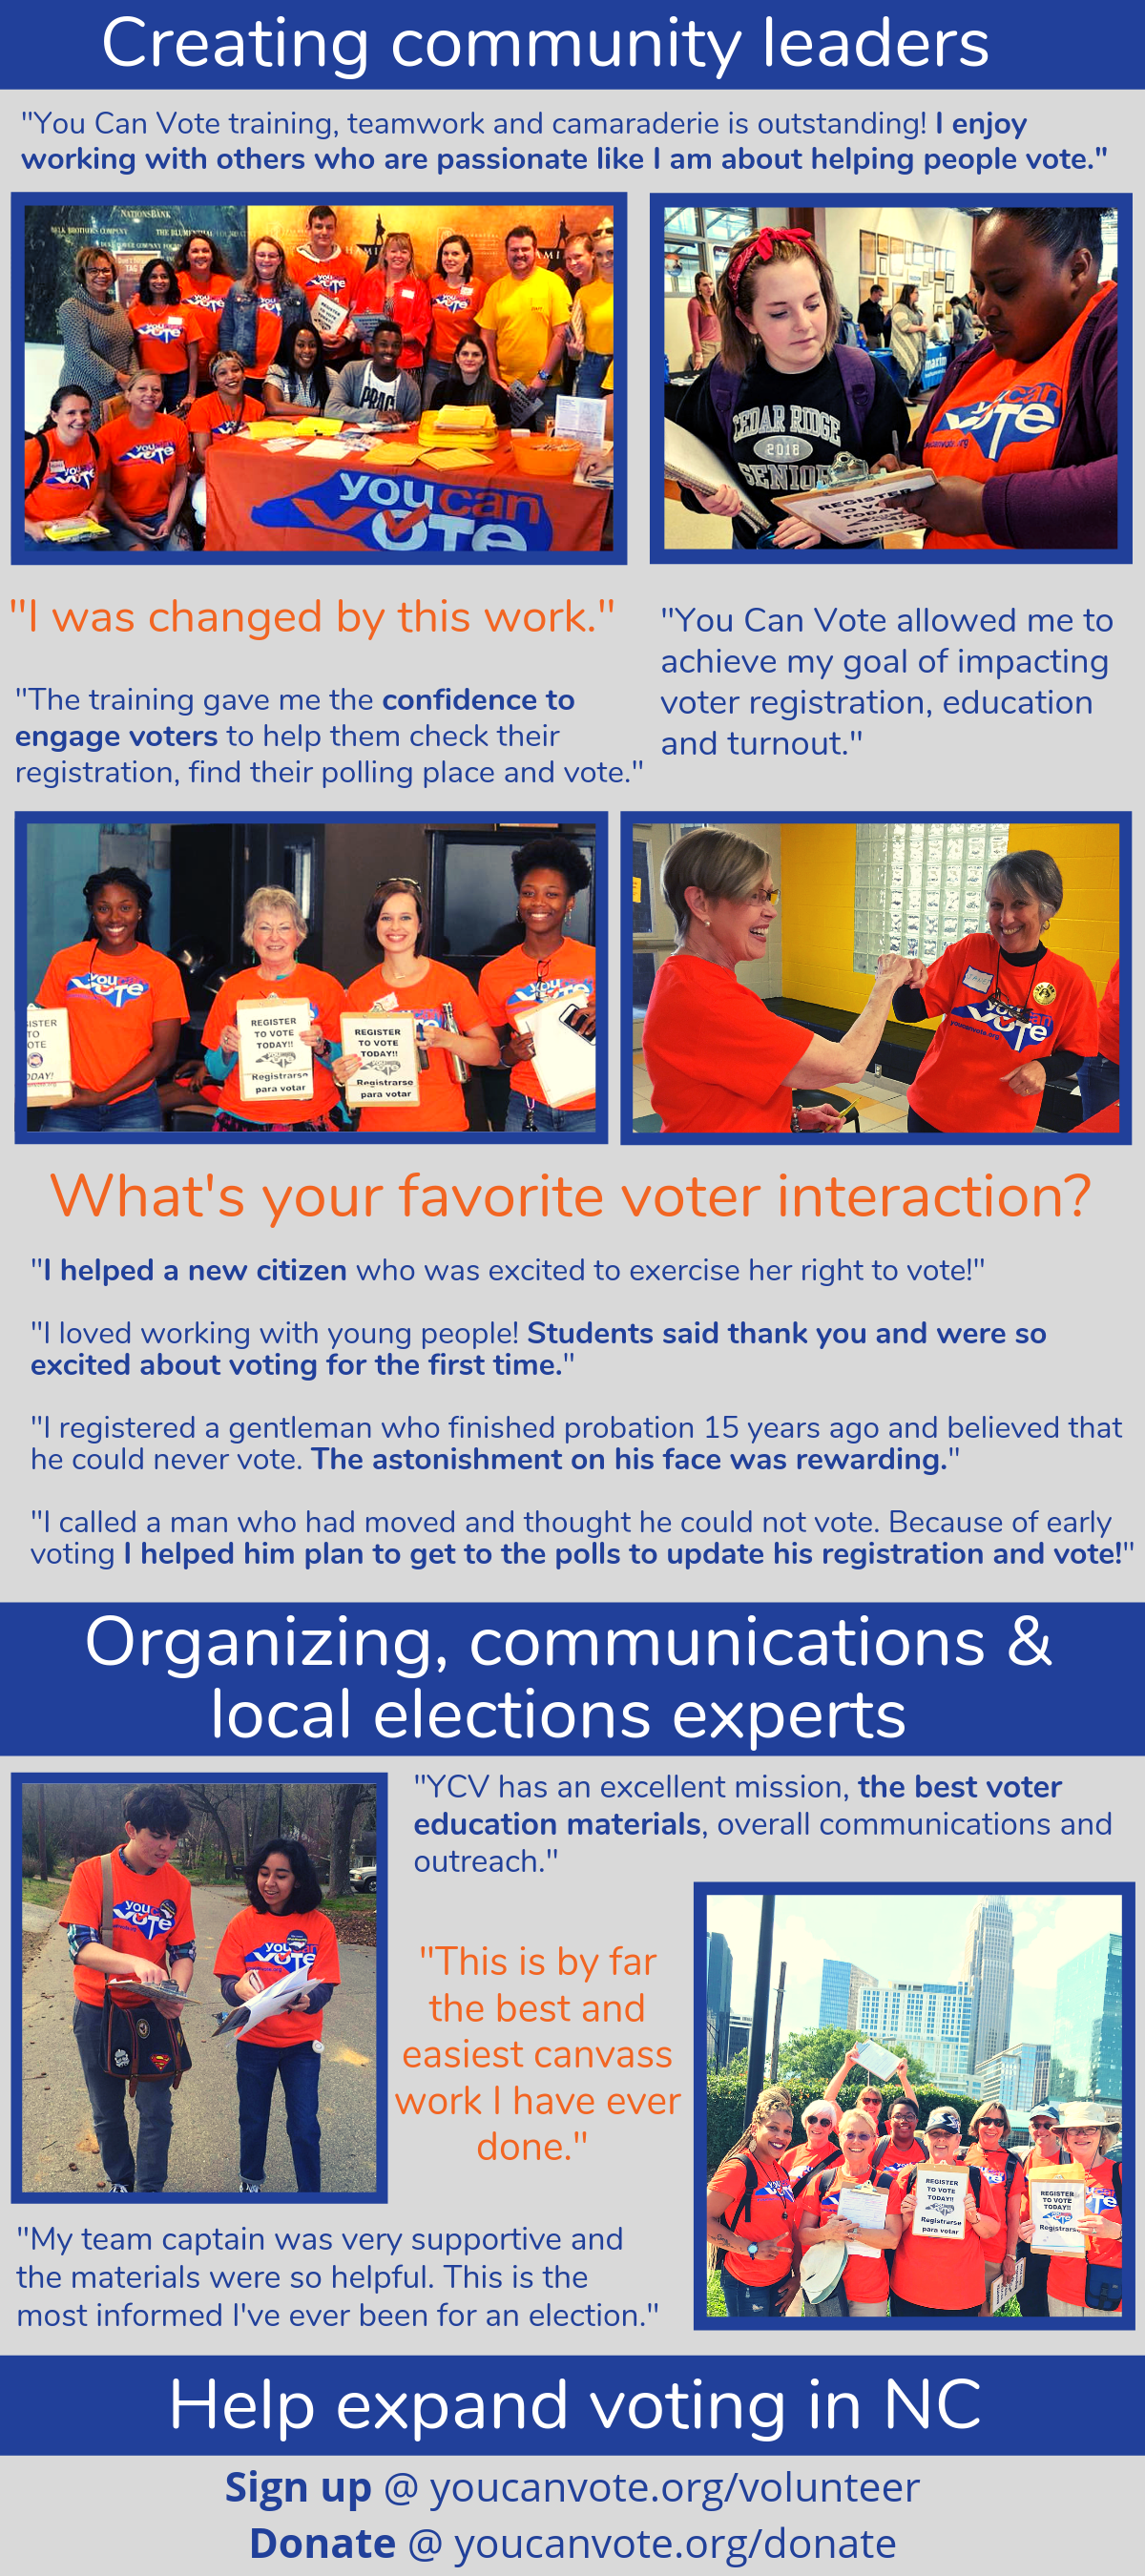 "A poster titled ""Creating community leaders"". It is covered with quotes from volunteers and pictures of small groups of people, always wearing the bright orange You Can Vote shirts with its blue and white logo, holding up registration clipboards and talking to citizens. The quotes include:  ""You Can Vote training, teamwork, and camaraderie is outstanding! I enjoy working with others who are passionate like I am about helping people vote.""  ""I was changed by this work.""  ""The training gave me the confidence to engage voters to help them check their registration, find their polling place and vote.""  ""You Can Vote allowed me to achieve my goal of impacting voter registration, education, and turnout.""  Under a header reading ""What's your favorite voter interaction?"" are the following responses:  ""I helped a new citizen who was excited to exercise her right to vote!""  ""I loved working with young people! Students said thank you and were so excited about voting for the first time.""  ""I registered a gentleman who finished probation 15 years ago and blieved that he could never vote. The astonishment on his face was rewarding.""  ""I called a man who had moved and thought he could not vote. Because of early voting I helped him plan to get to the polls to update his registration and vote!""  Under a header reading ""Organizing, communications & local elections experts"" are the following quotes:  ""YCV has an excellent mission, the best voter education materials, overall communications and outreach.""  ""This is by far the best and easiest canvass work I have ever done.""  ""My team captain was very supportive and the materials were so helpful. This is the most informed I've ever been for an election.""  A final section reads ""Help expand voting in NC! Sign up at youcanvote.org/volunteer or Donate at youcanvote.org/donate"""